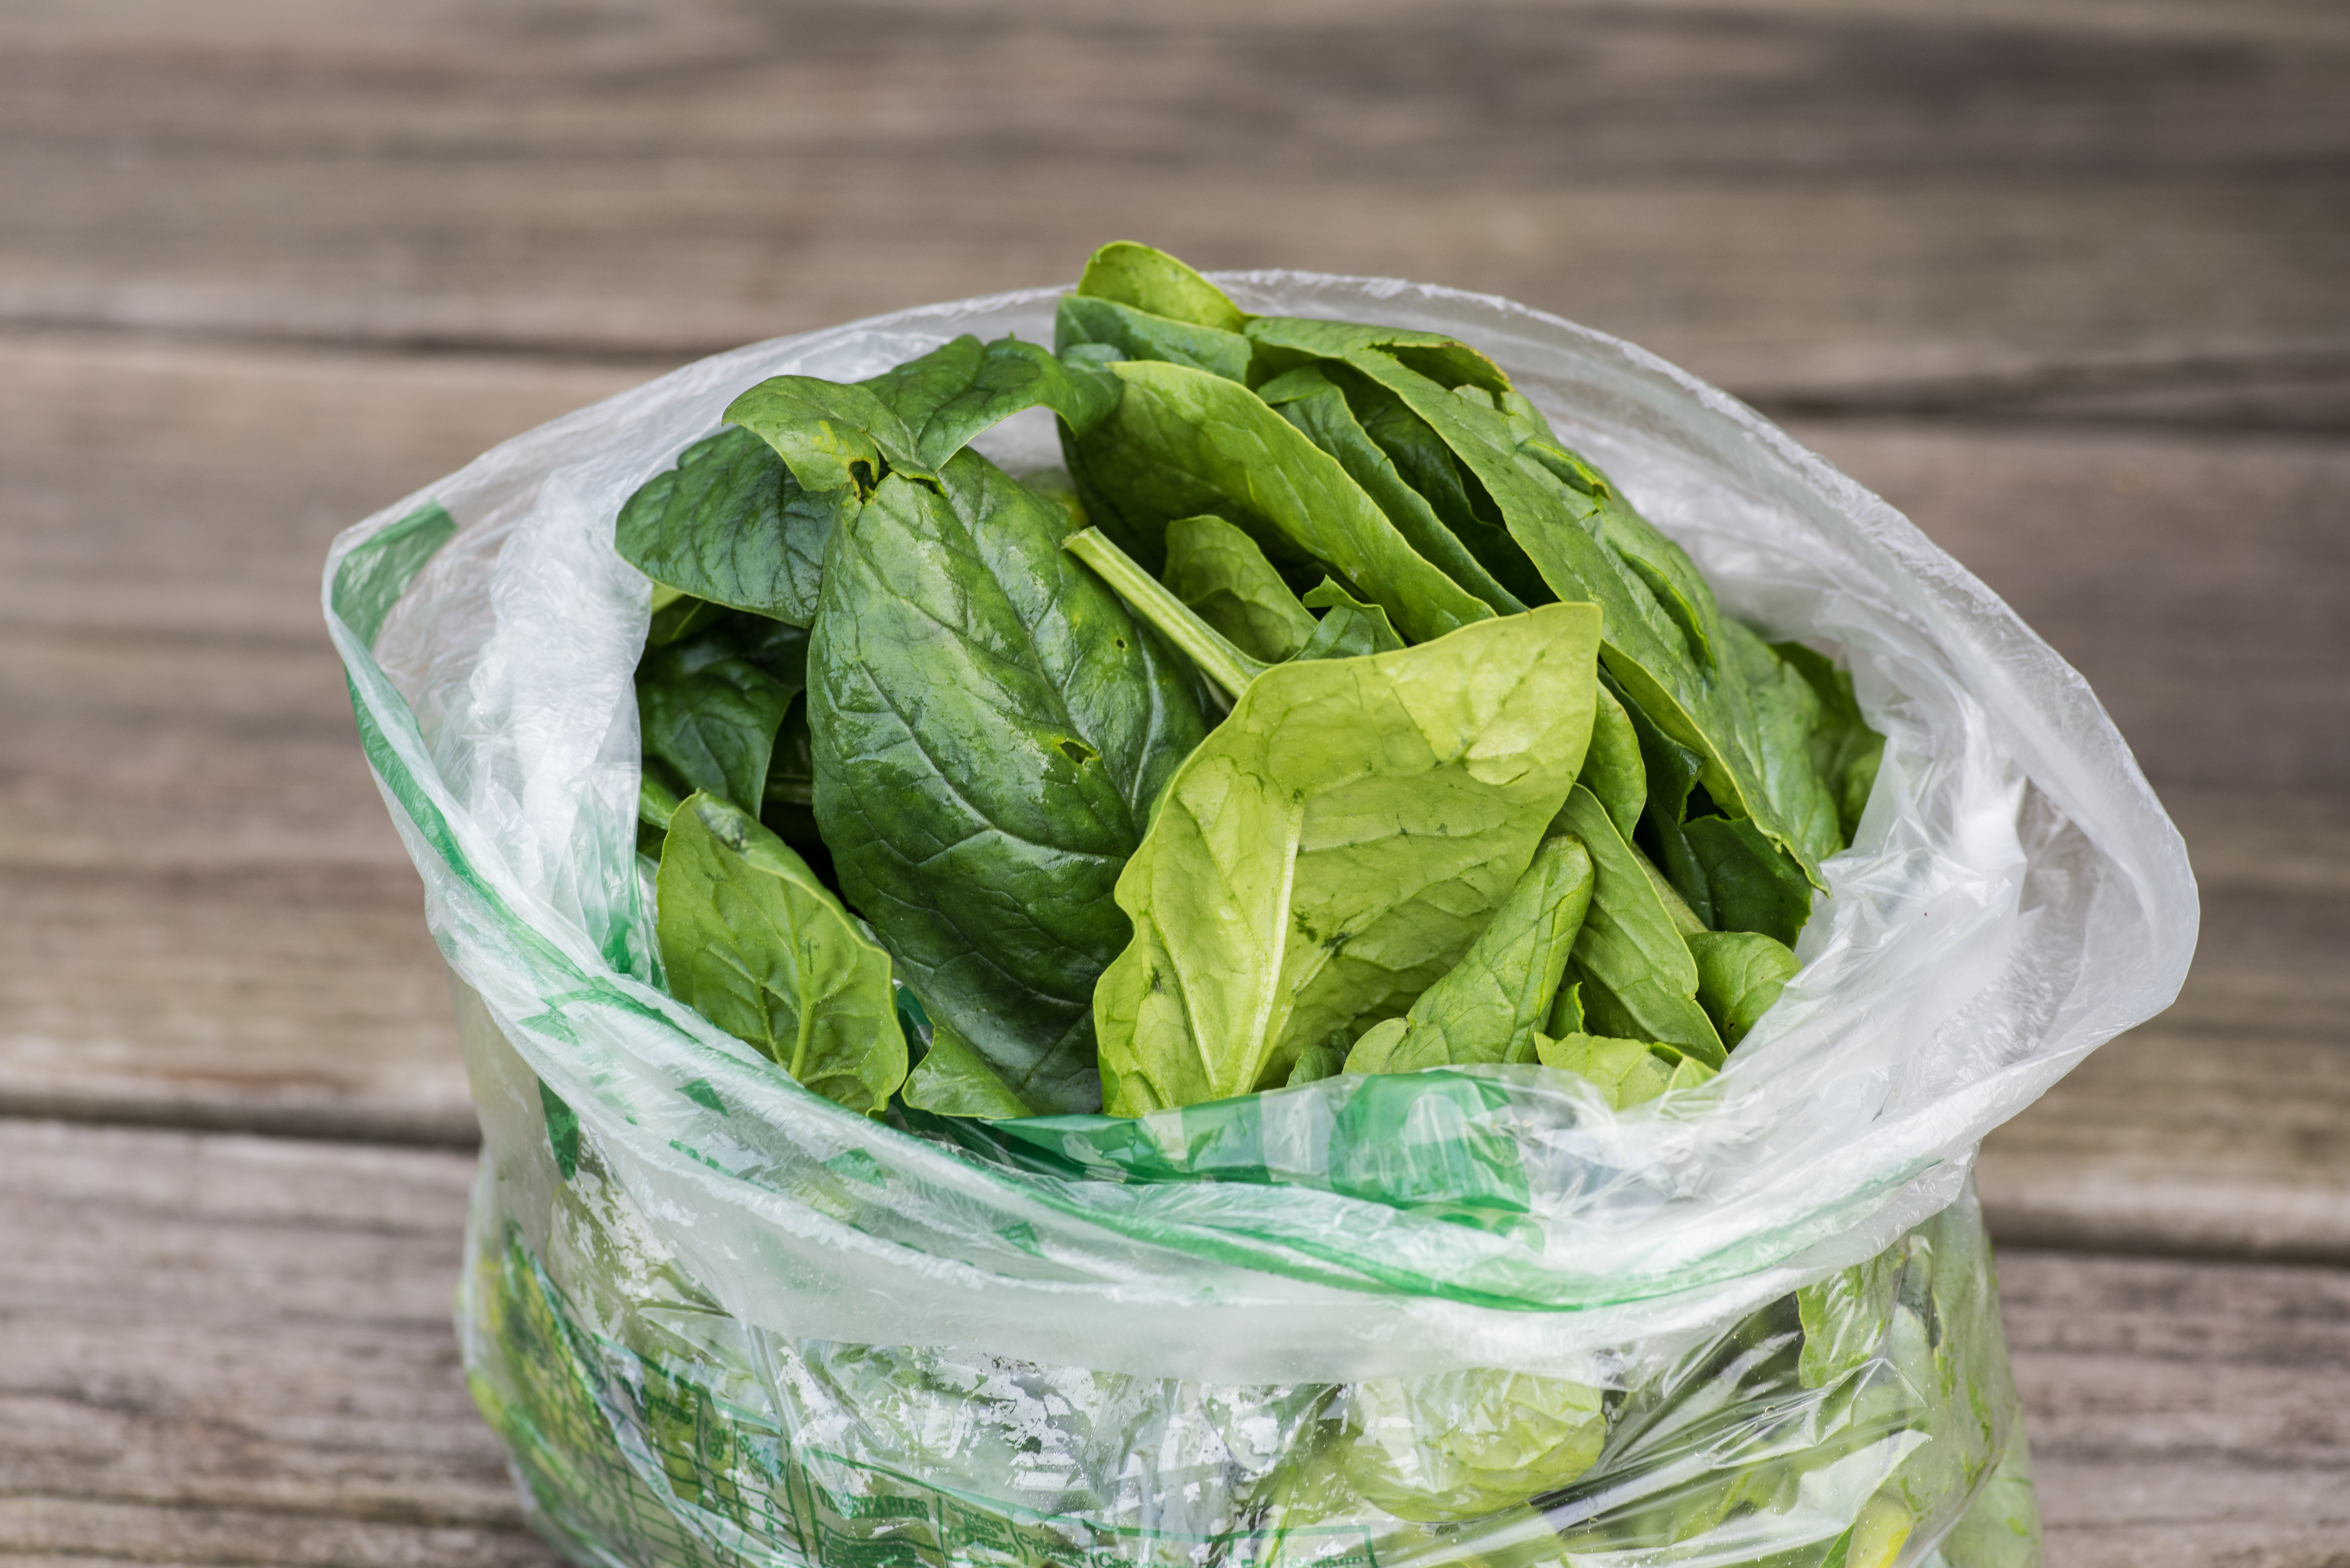 Bag of fresh spinach